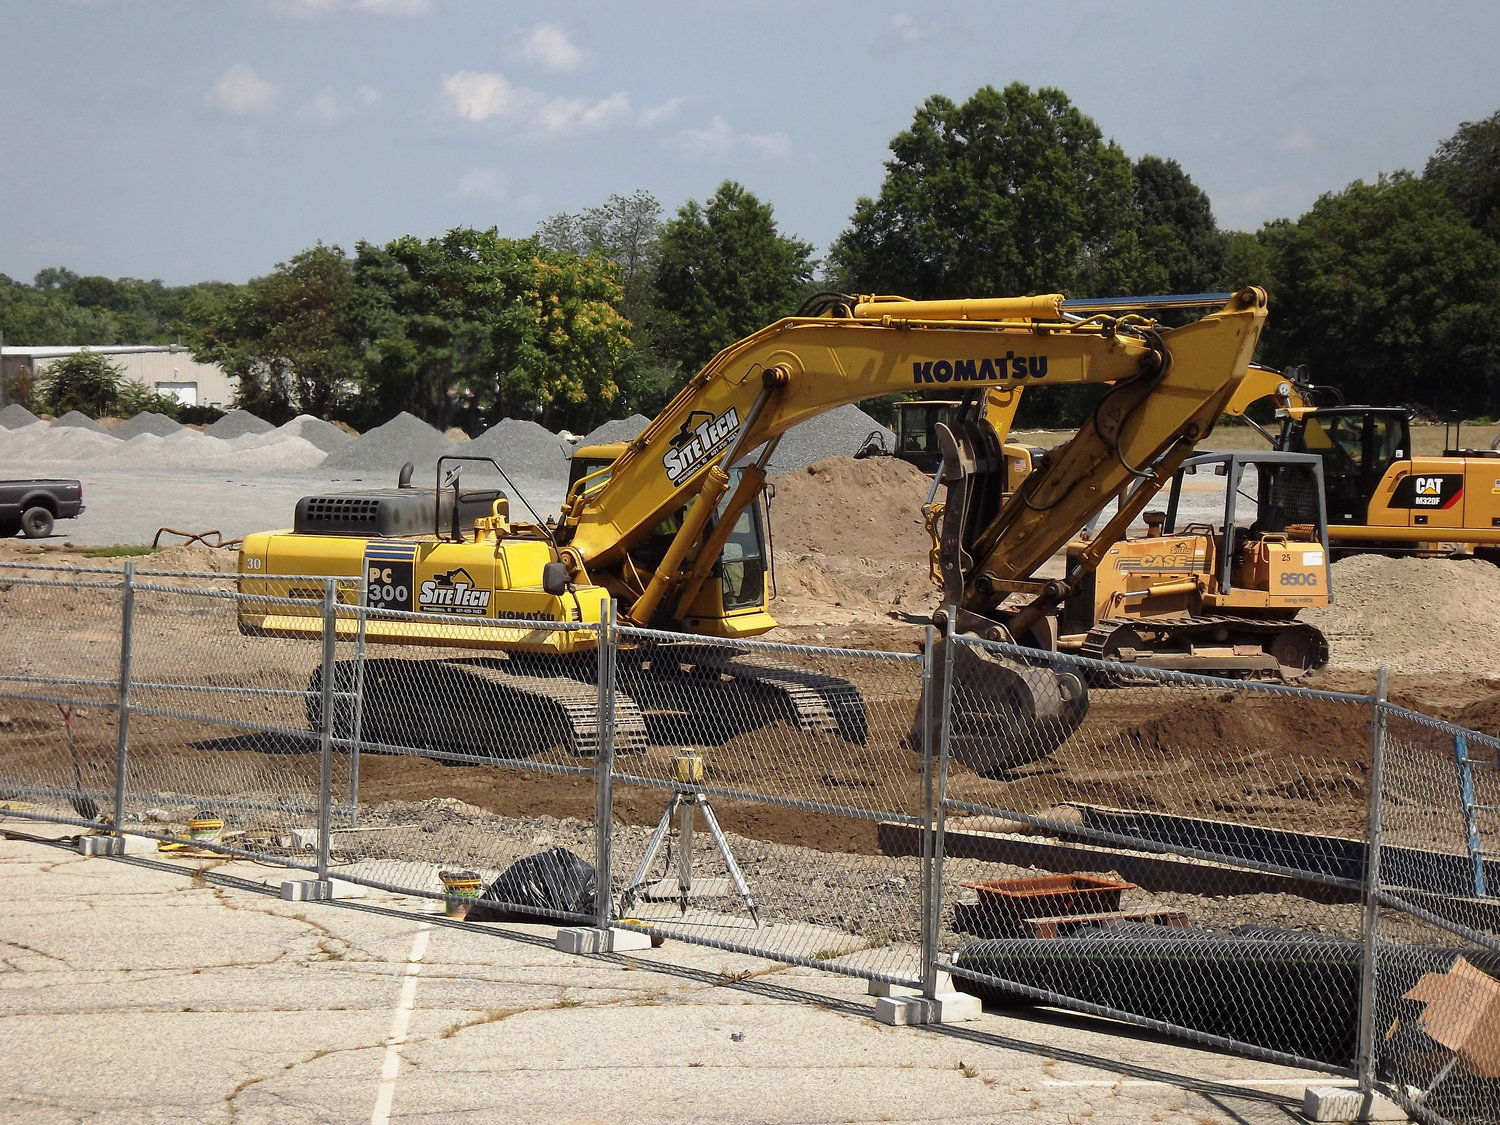 EPHS construction has started in July